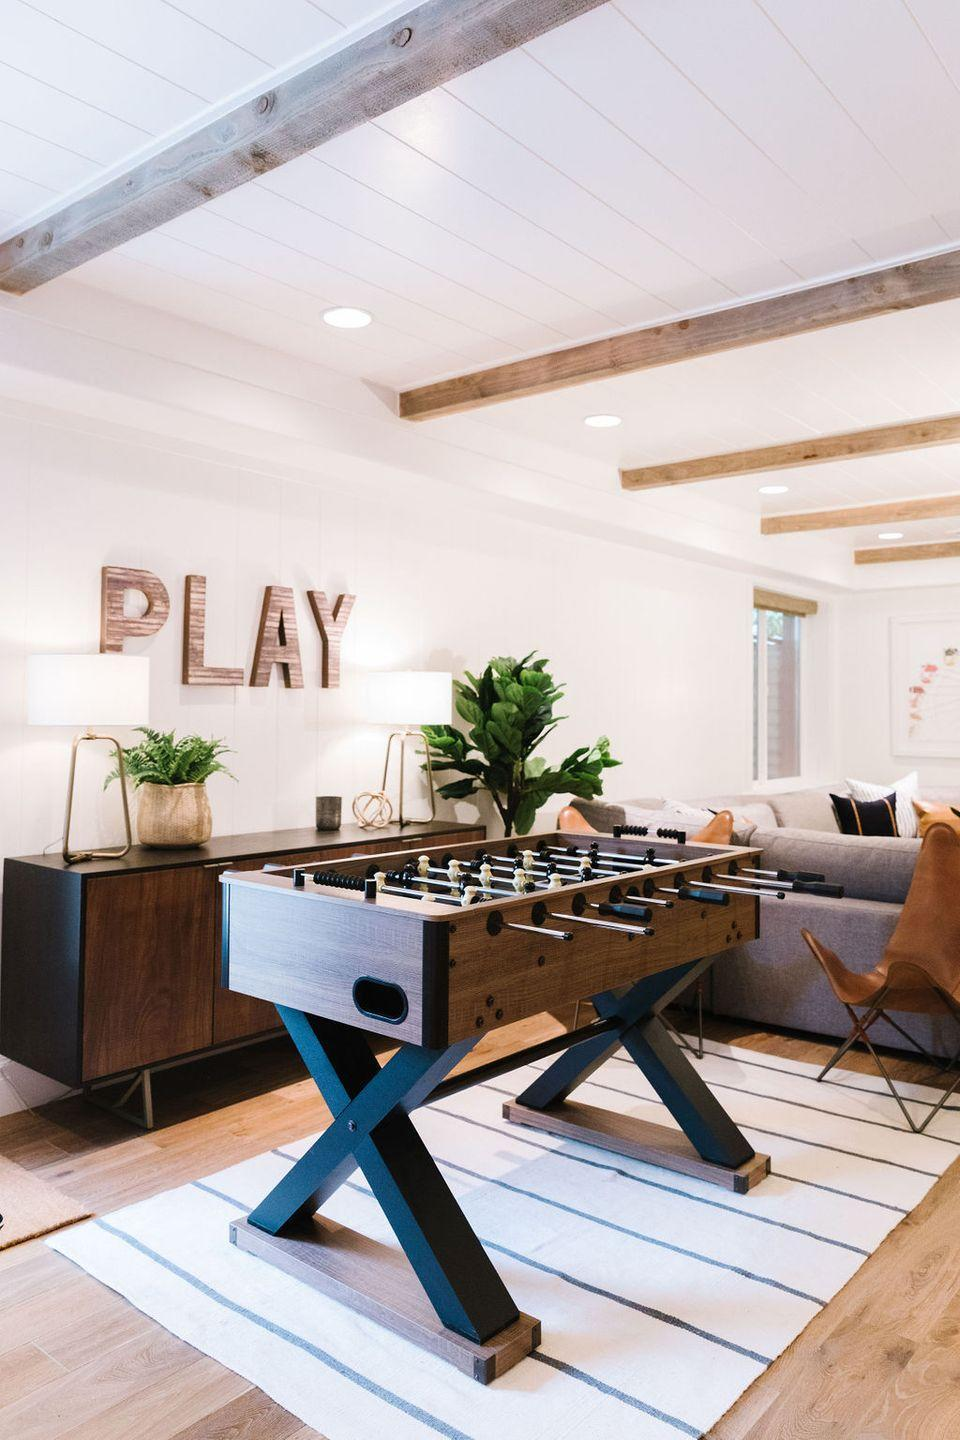 """<p>This family-friendly basement living room is filled with fun touches, like an oversized Ferris wheel print, a """"PLAY"""" wall sign, and the most beautiful modern foosball table you'll ever see. Let the games begin!</p><p><strong>See more at <a href=""""https://stagg-design.com/all/basement-kitchen-reveal-project-modern-family/"""" rel=""""nofollow noopener"""" target=""""_blank"""" data-ylk=""""slk:Stagg Design"""" class=""""link rapid-noclick-resp"""">Stagg Design</a>. </strong></p><p><a class=""""link rapid-noclick-resp"""" href=""""https://go.redirectingat.com?id=74968X1596630&url=https%3A%2F%2Fwww.walmart.com%2Fip%2FBest-Choice-Products-48in-Competition-Sized-Soccer-Foosball-Table-w-2-Balls-2-Cup-Holders-for-Home-Game-Room-Arcade%2F51883102&sref=https%3A%2F%2Fwww.redbookmag.com%2Fhome%2Fg36061437%2Fbasement-ideas%2F"""" rel=""""nofollow noopener"""" target=""""_blank"""" data-ylk=""""slk:SHOP FOOSBALL TABLES"""">SHOP FOOSBALL TABLES</a></p>"""